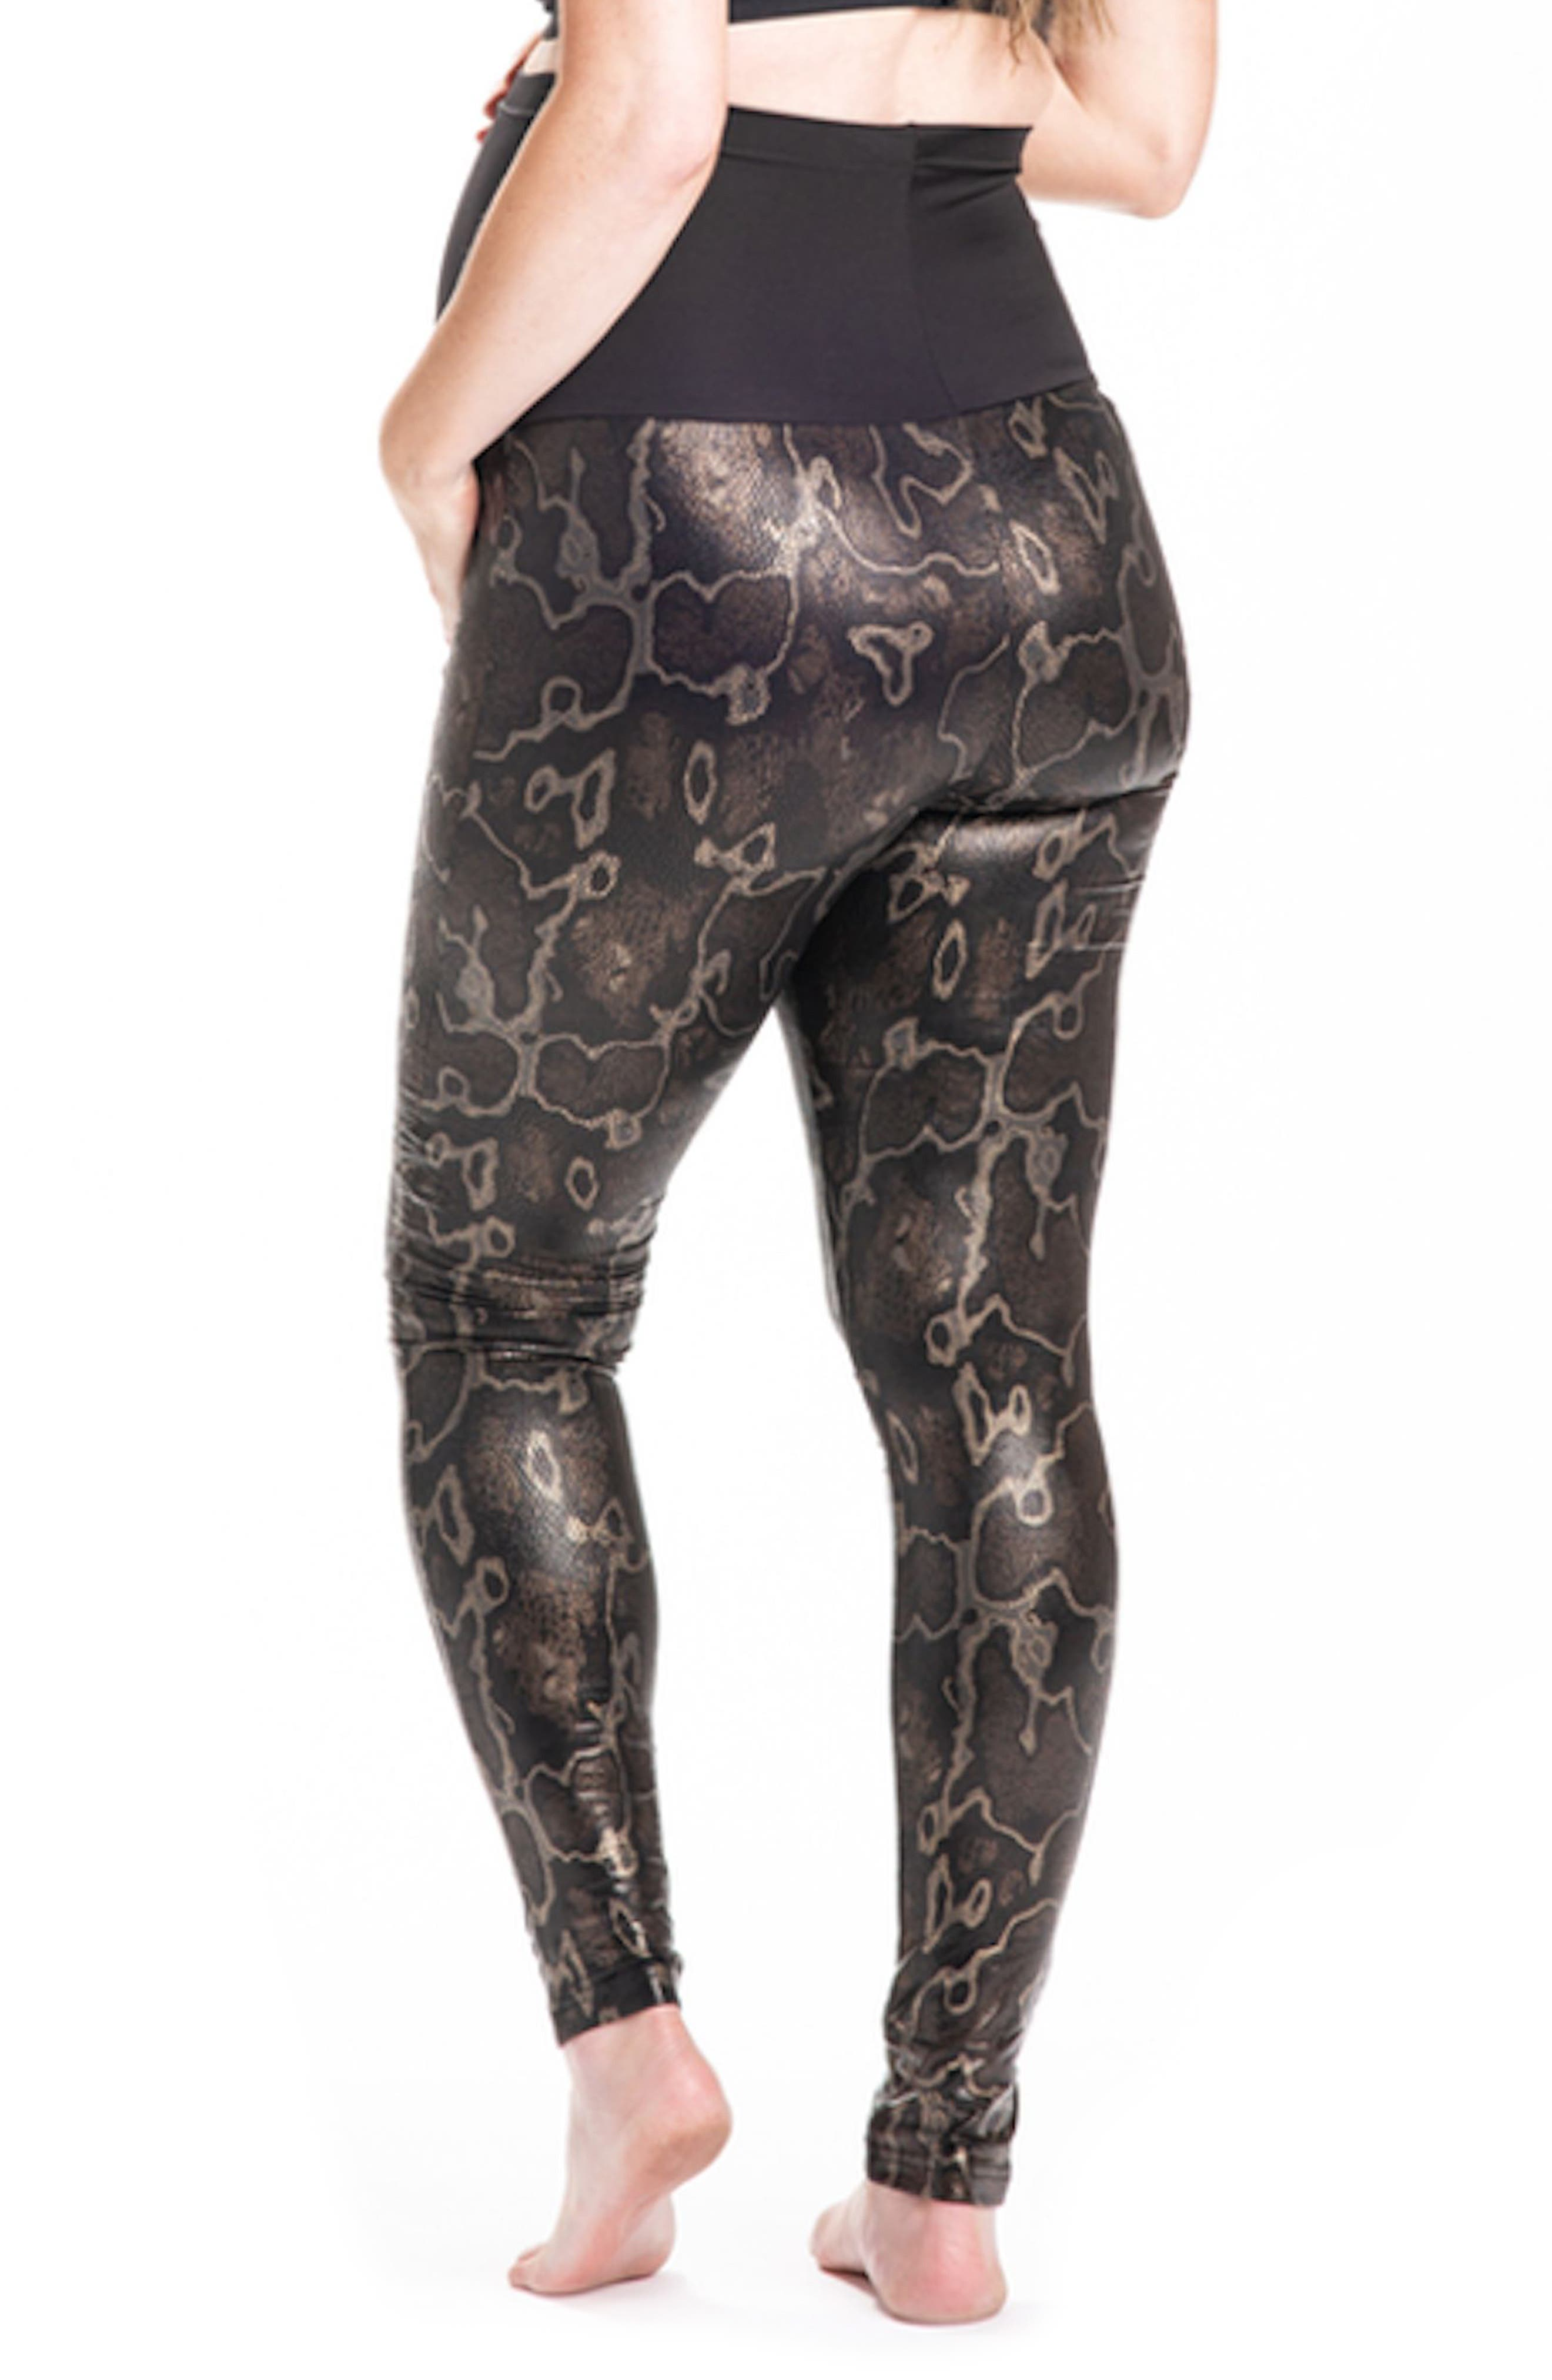 Boa Print Maternity Leggings,                             Alternate thumbnail 2, color,                             Dark Brown